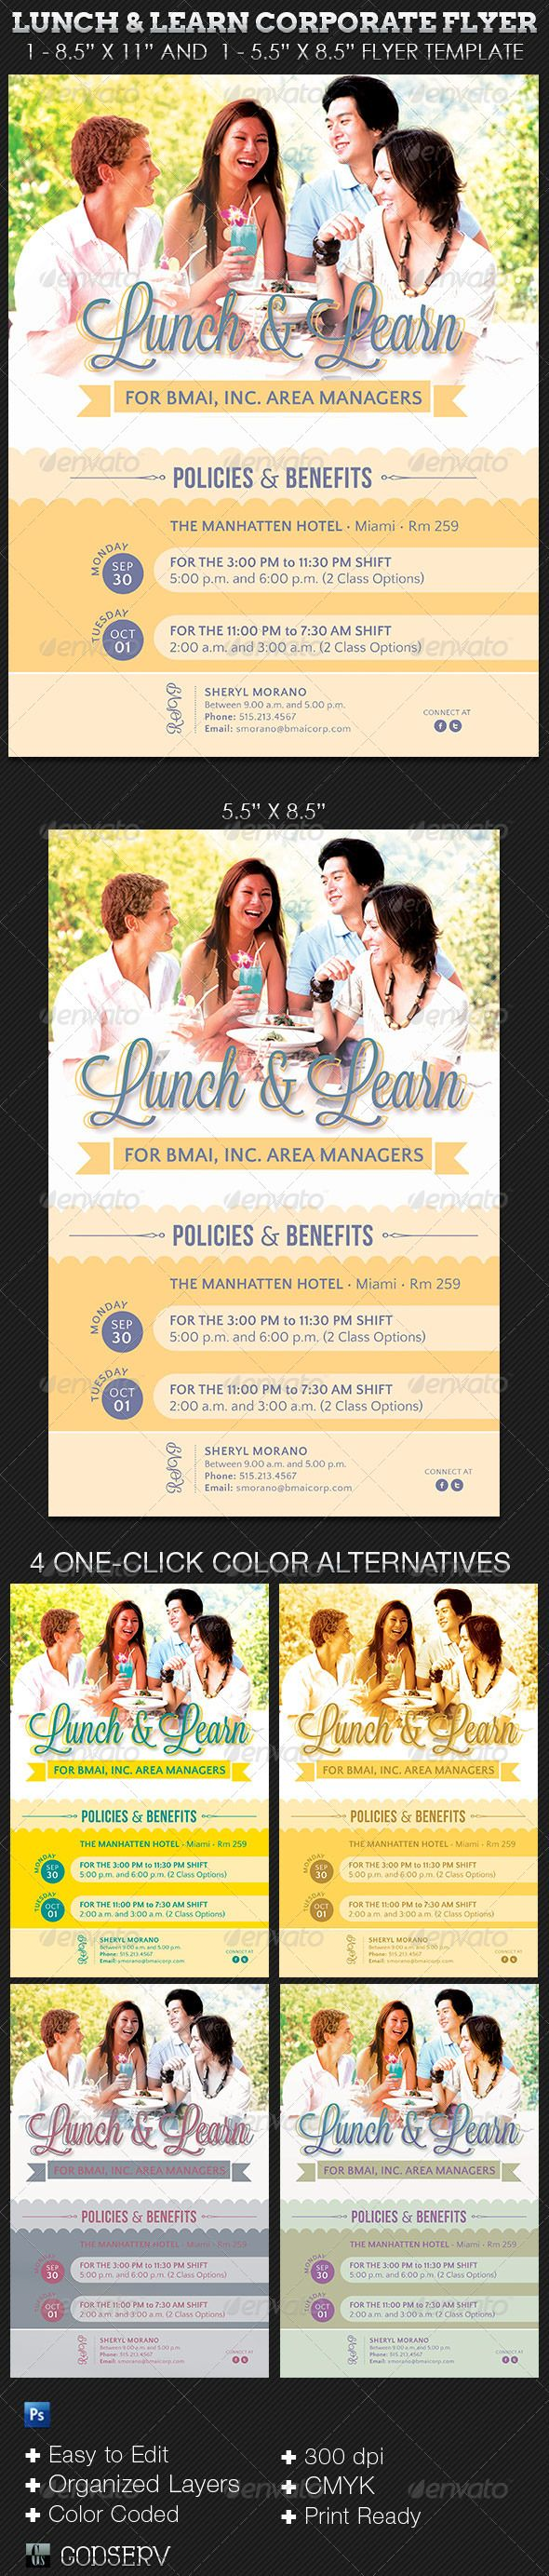 The Lunch And Learn Corporate Flyer Template Is Customized For